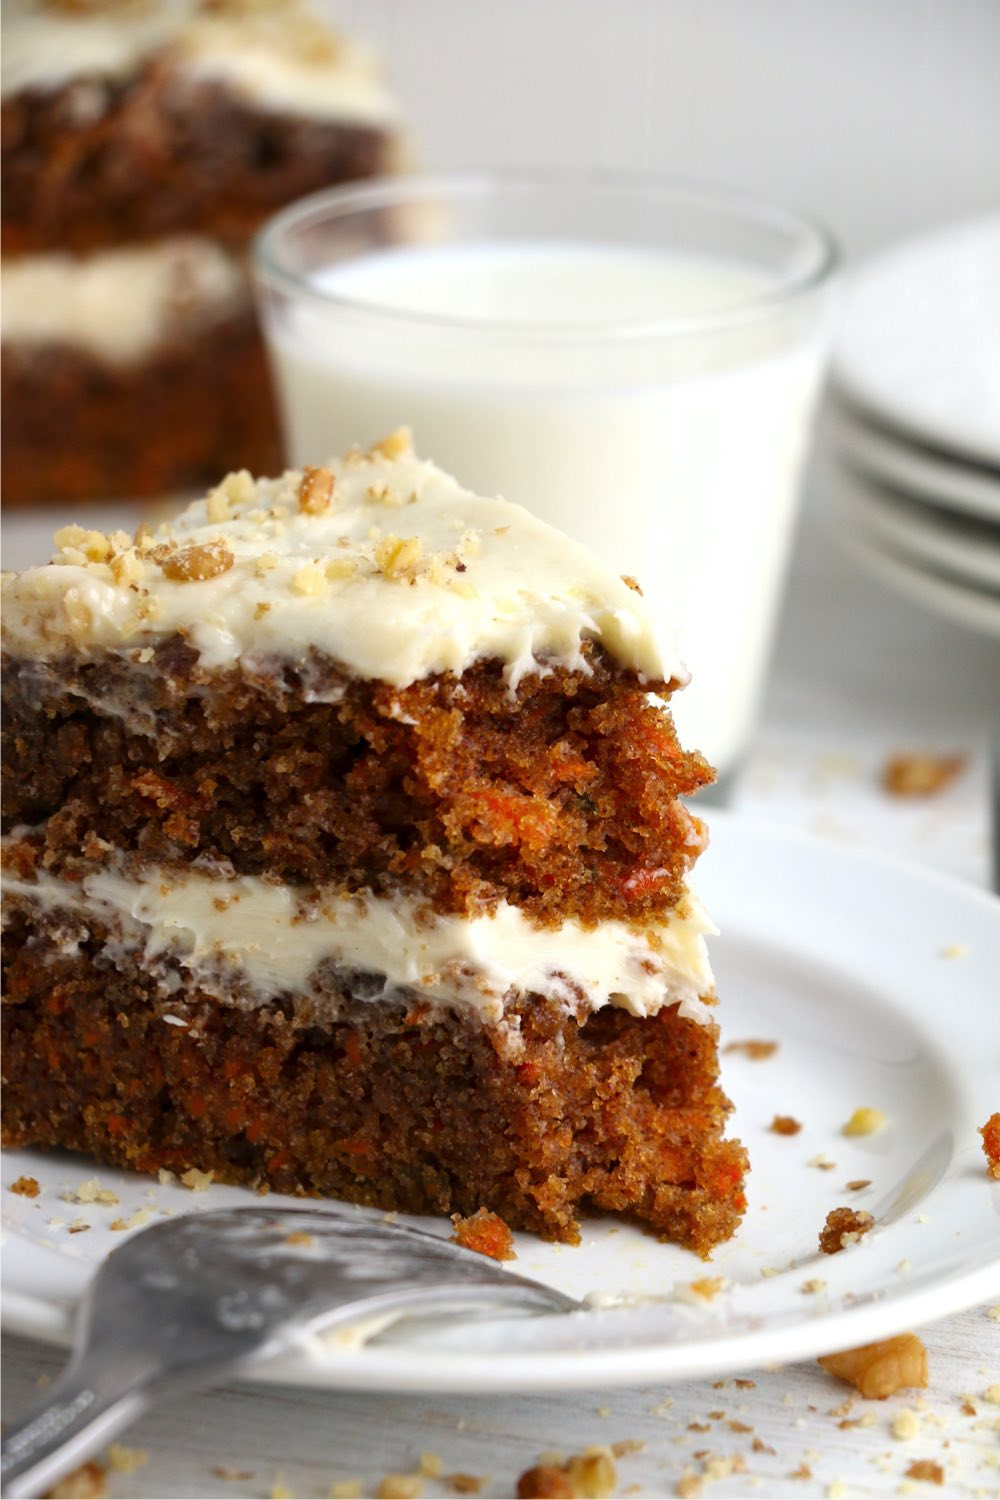 Piece of carrot cake being eaten with fork